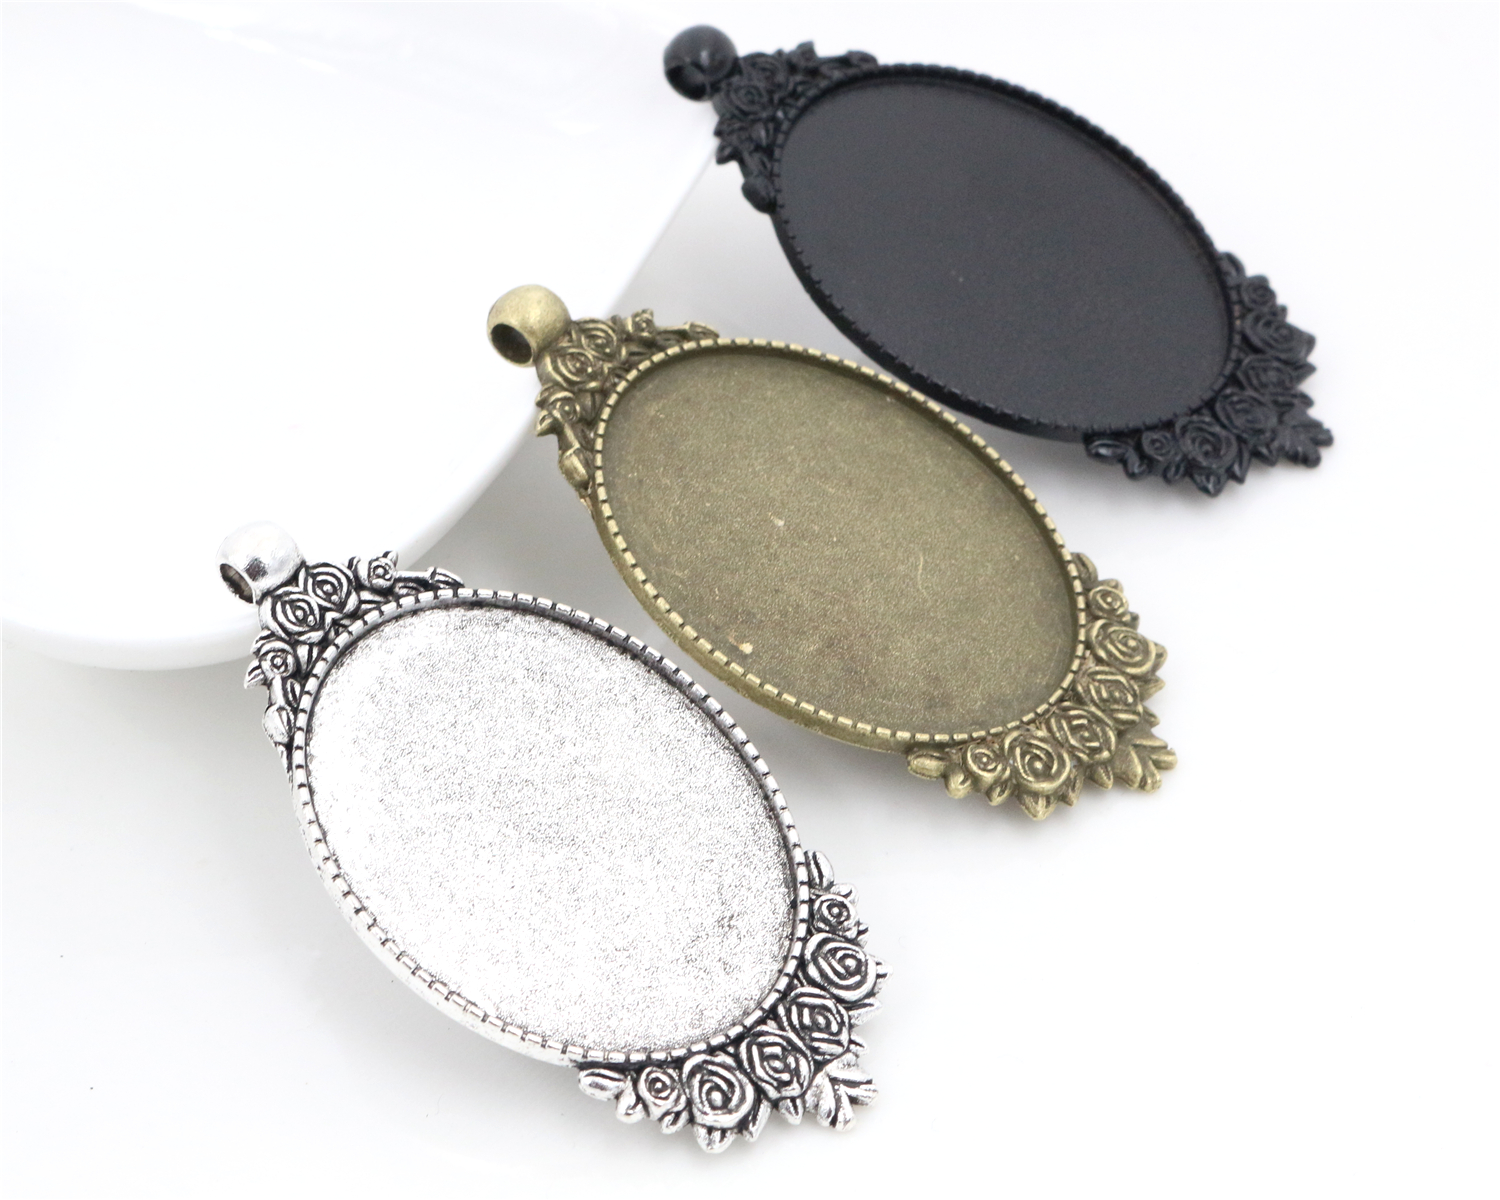 New Fashion 5pcs 30x40mm Inner Size Antique Bronze And Silver Black Colors Flowers Style Cabochon Base Setting Charms PendantNew Fashion 5pcs 30x40mm Inner Size Antique Bronze And Silver Black Colors Flowers Style Cabochon Base Setting Charms Pendant